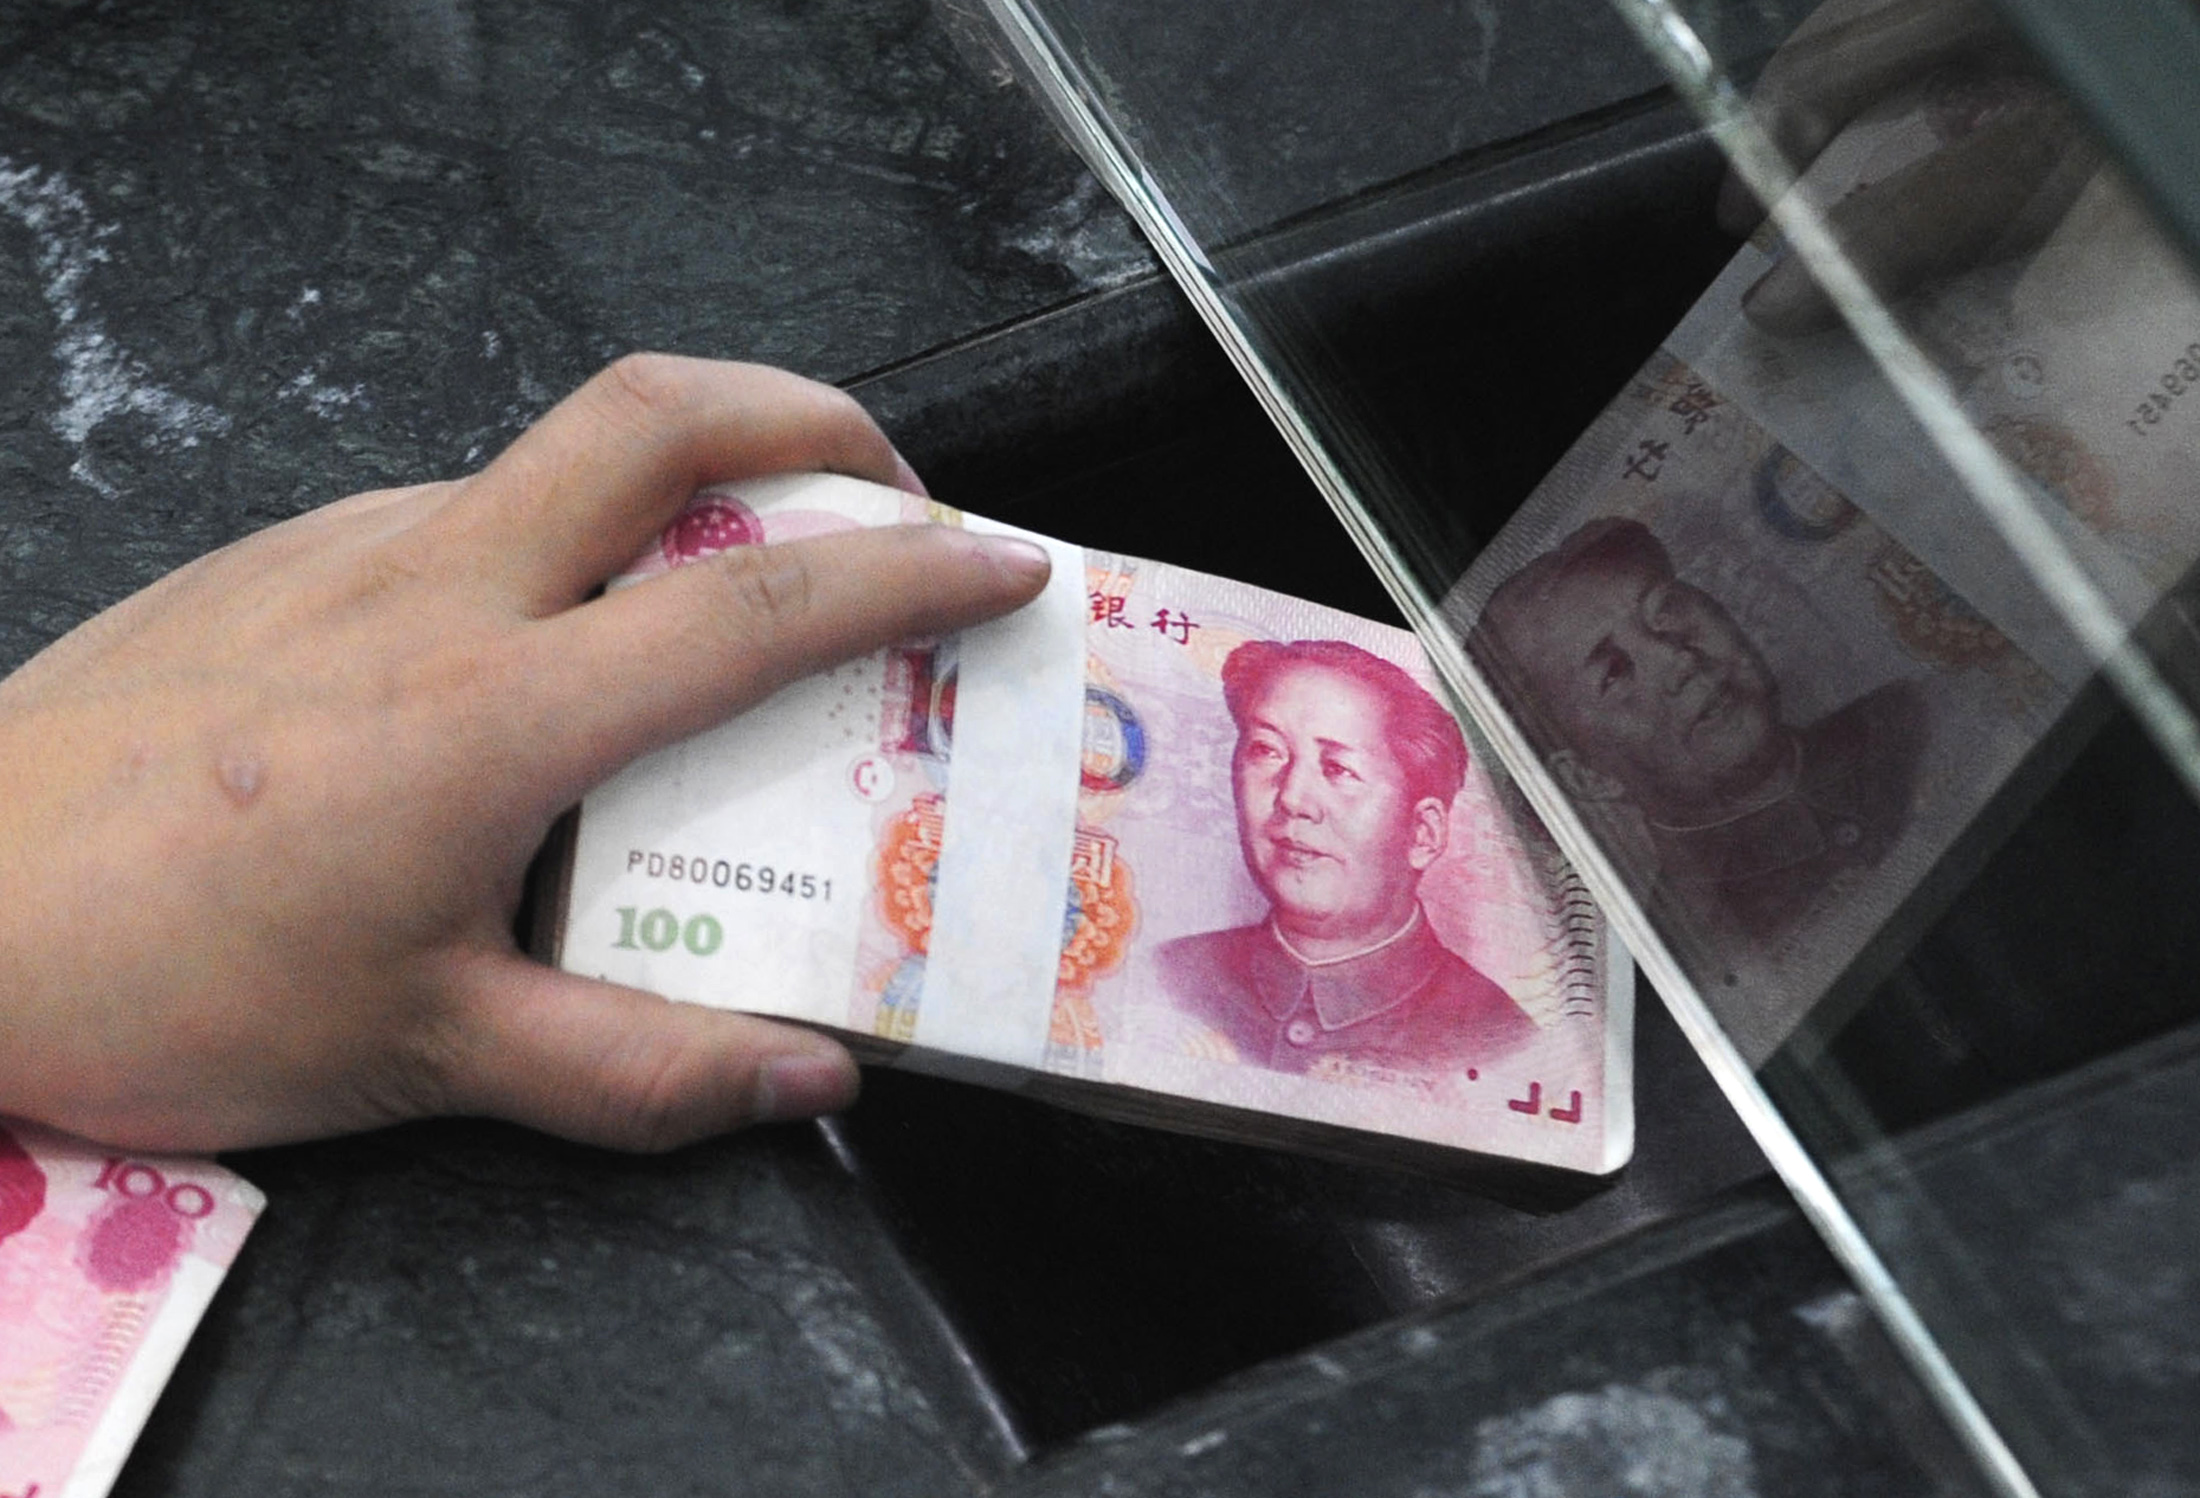 Chinese banks: the metrics don't matter